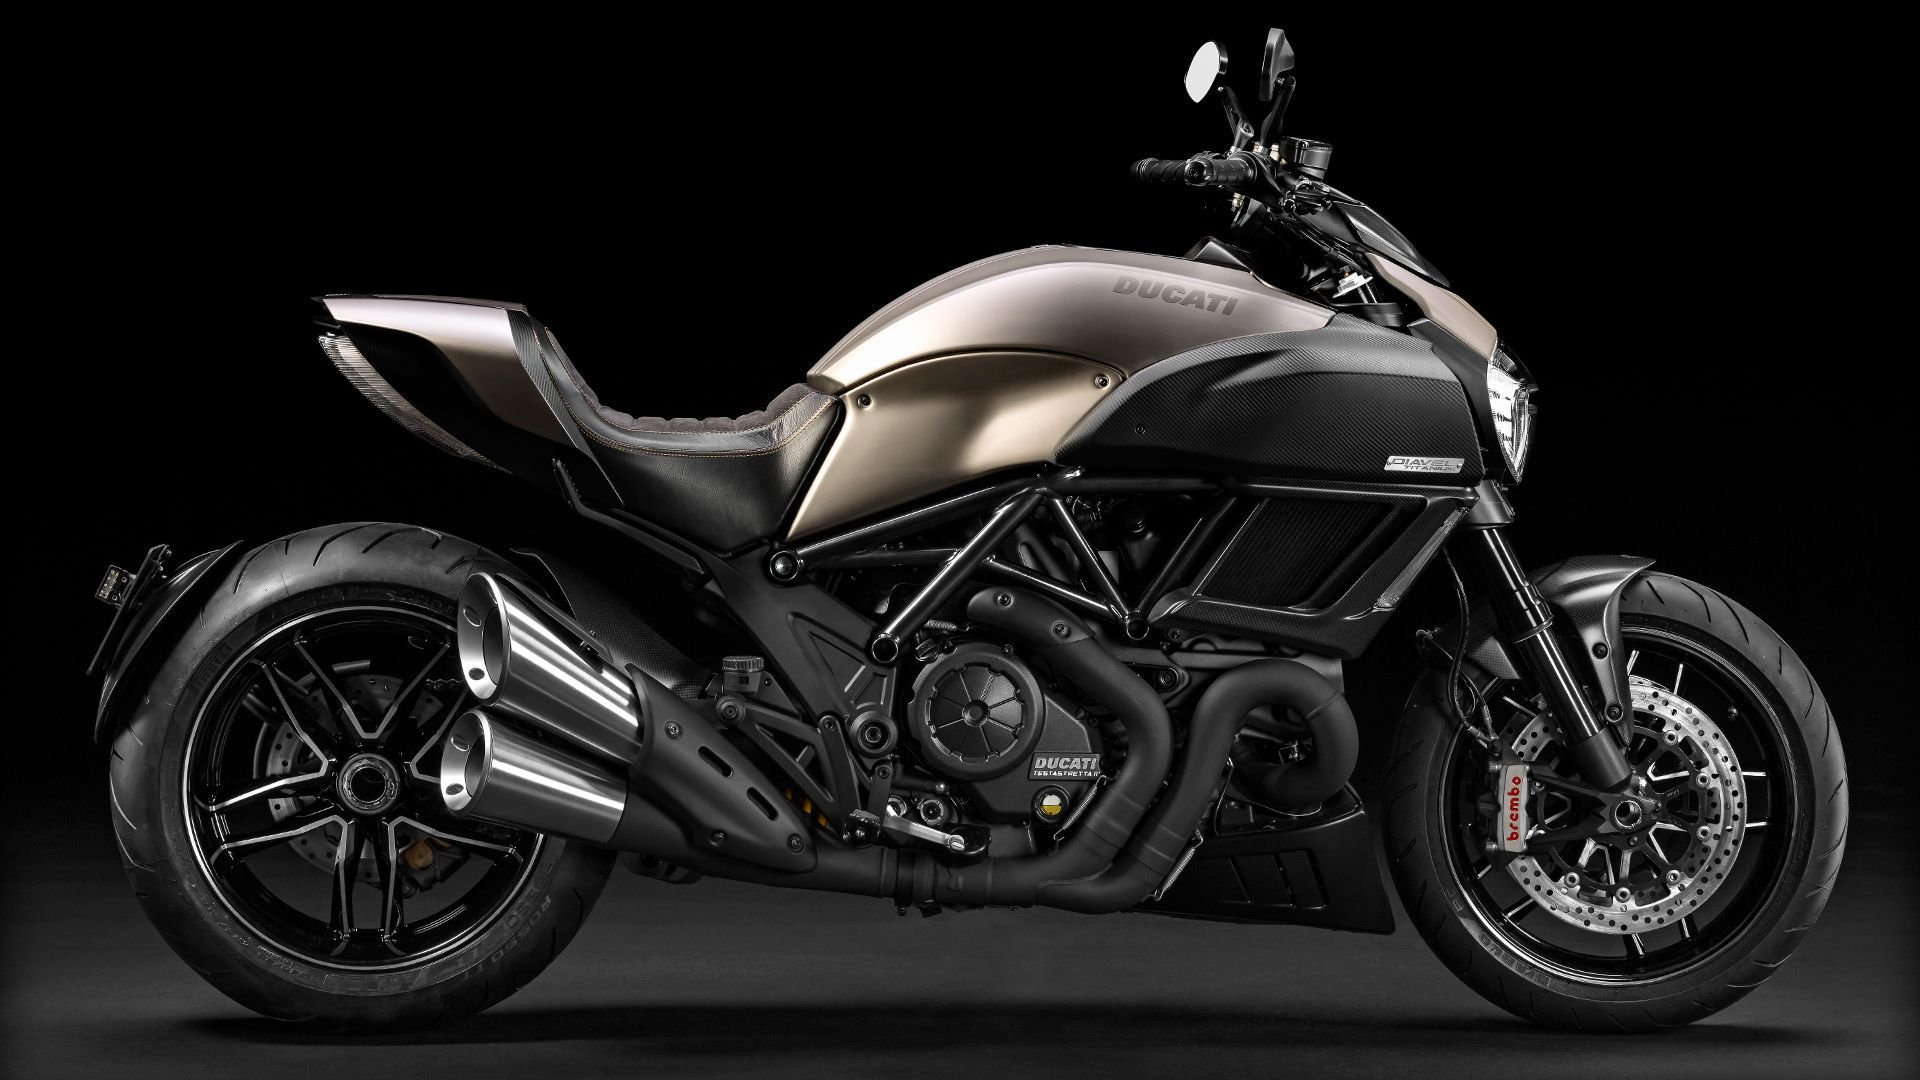 2015 Ducati Diavel Titanium | Diavel Titanium - Right Side View